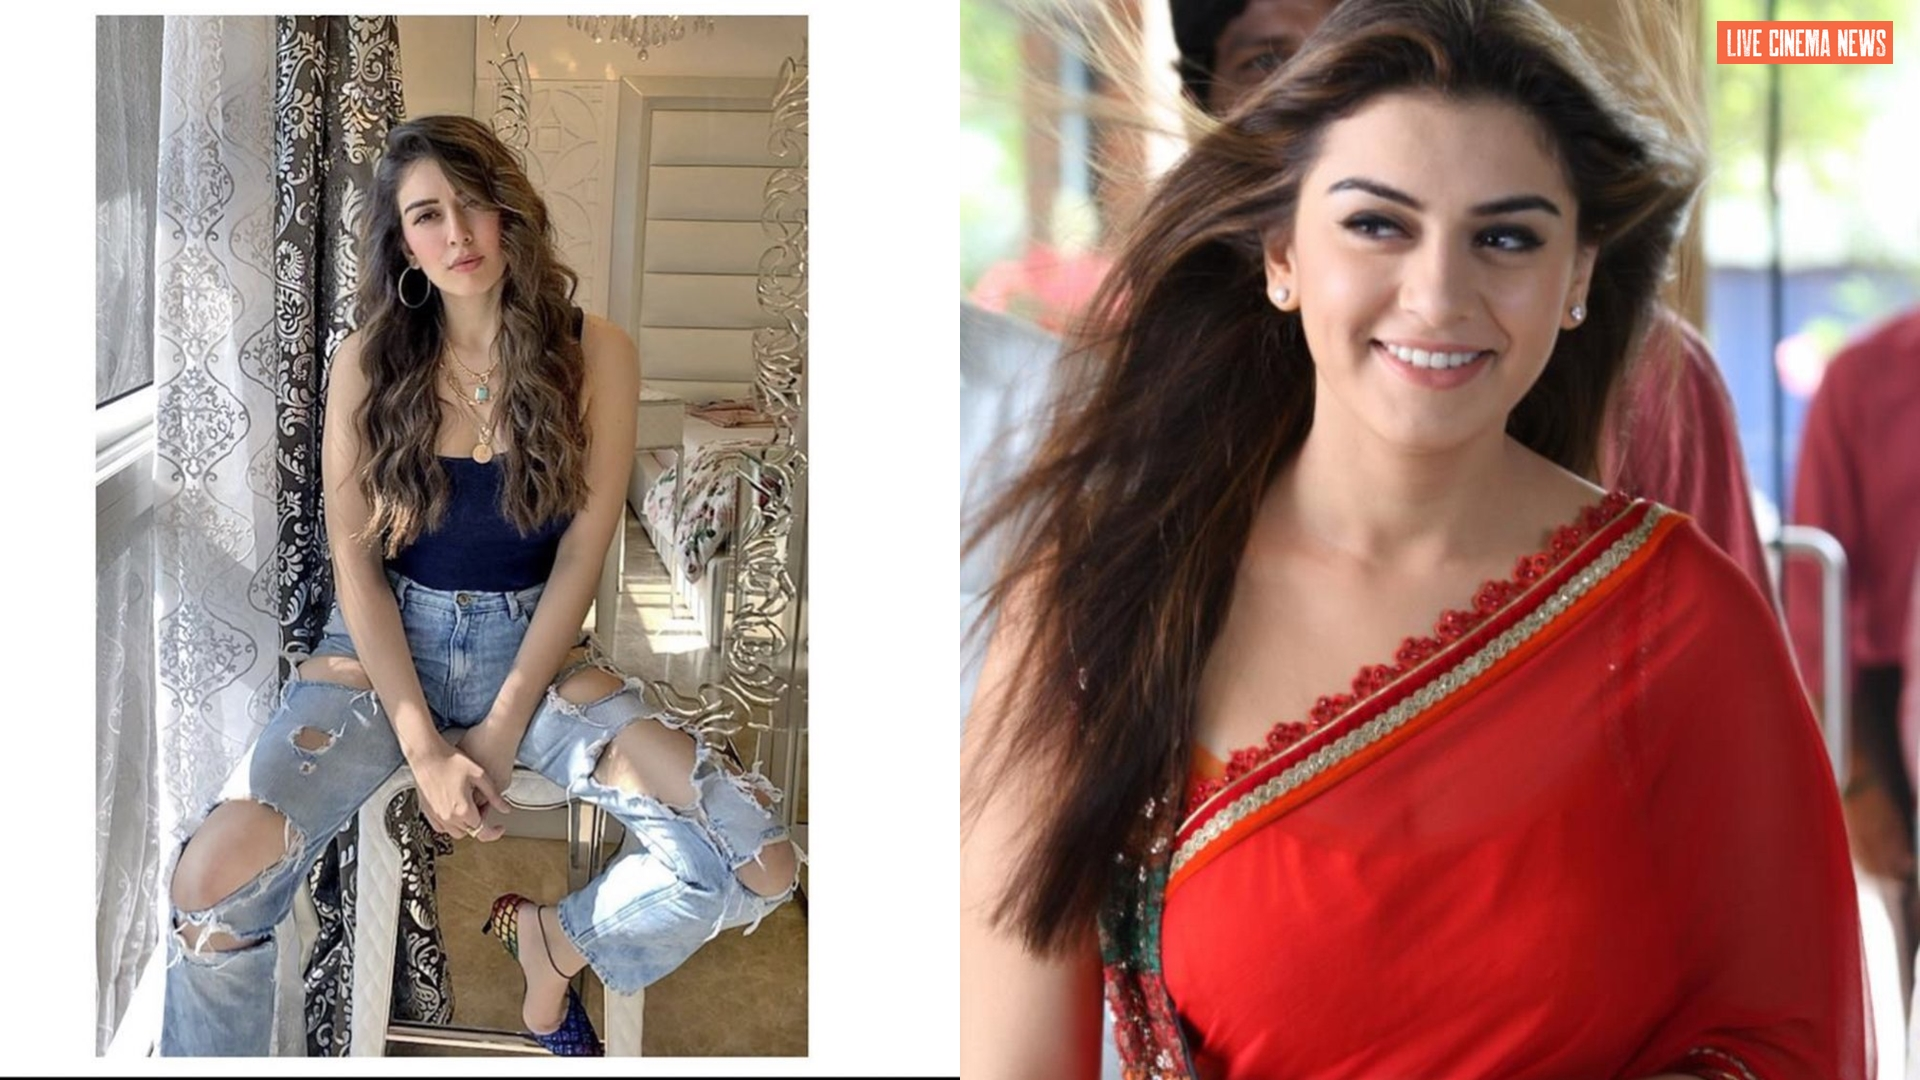 Fans teasing over hansika's new photo